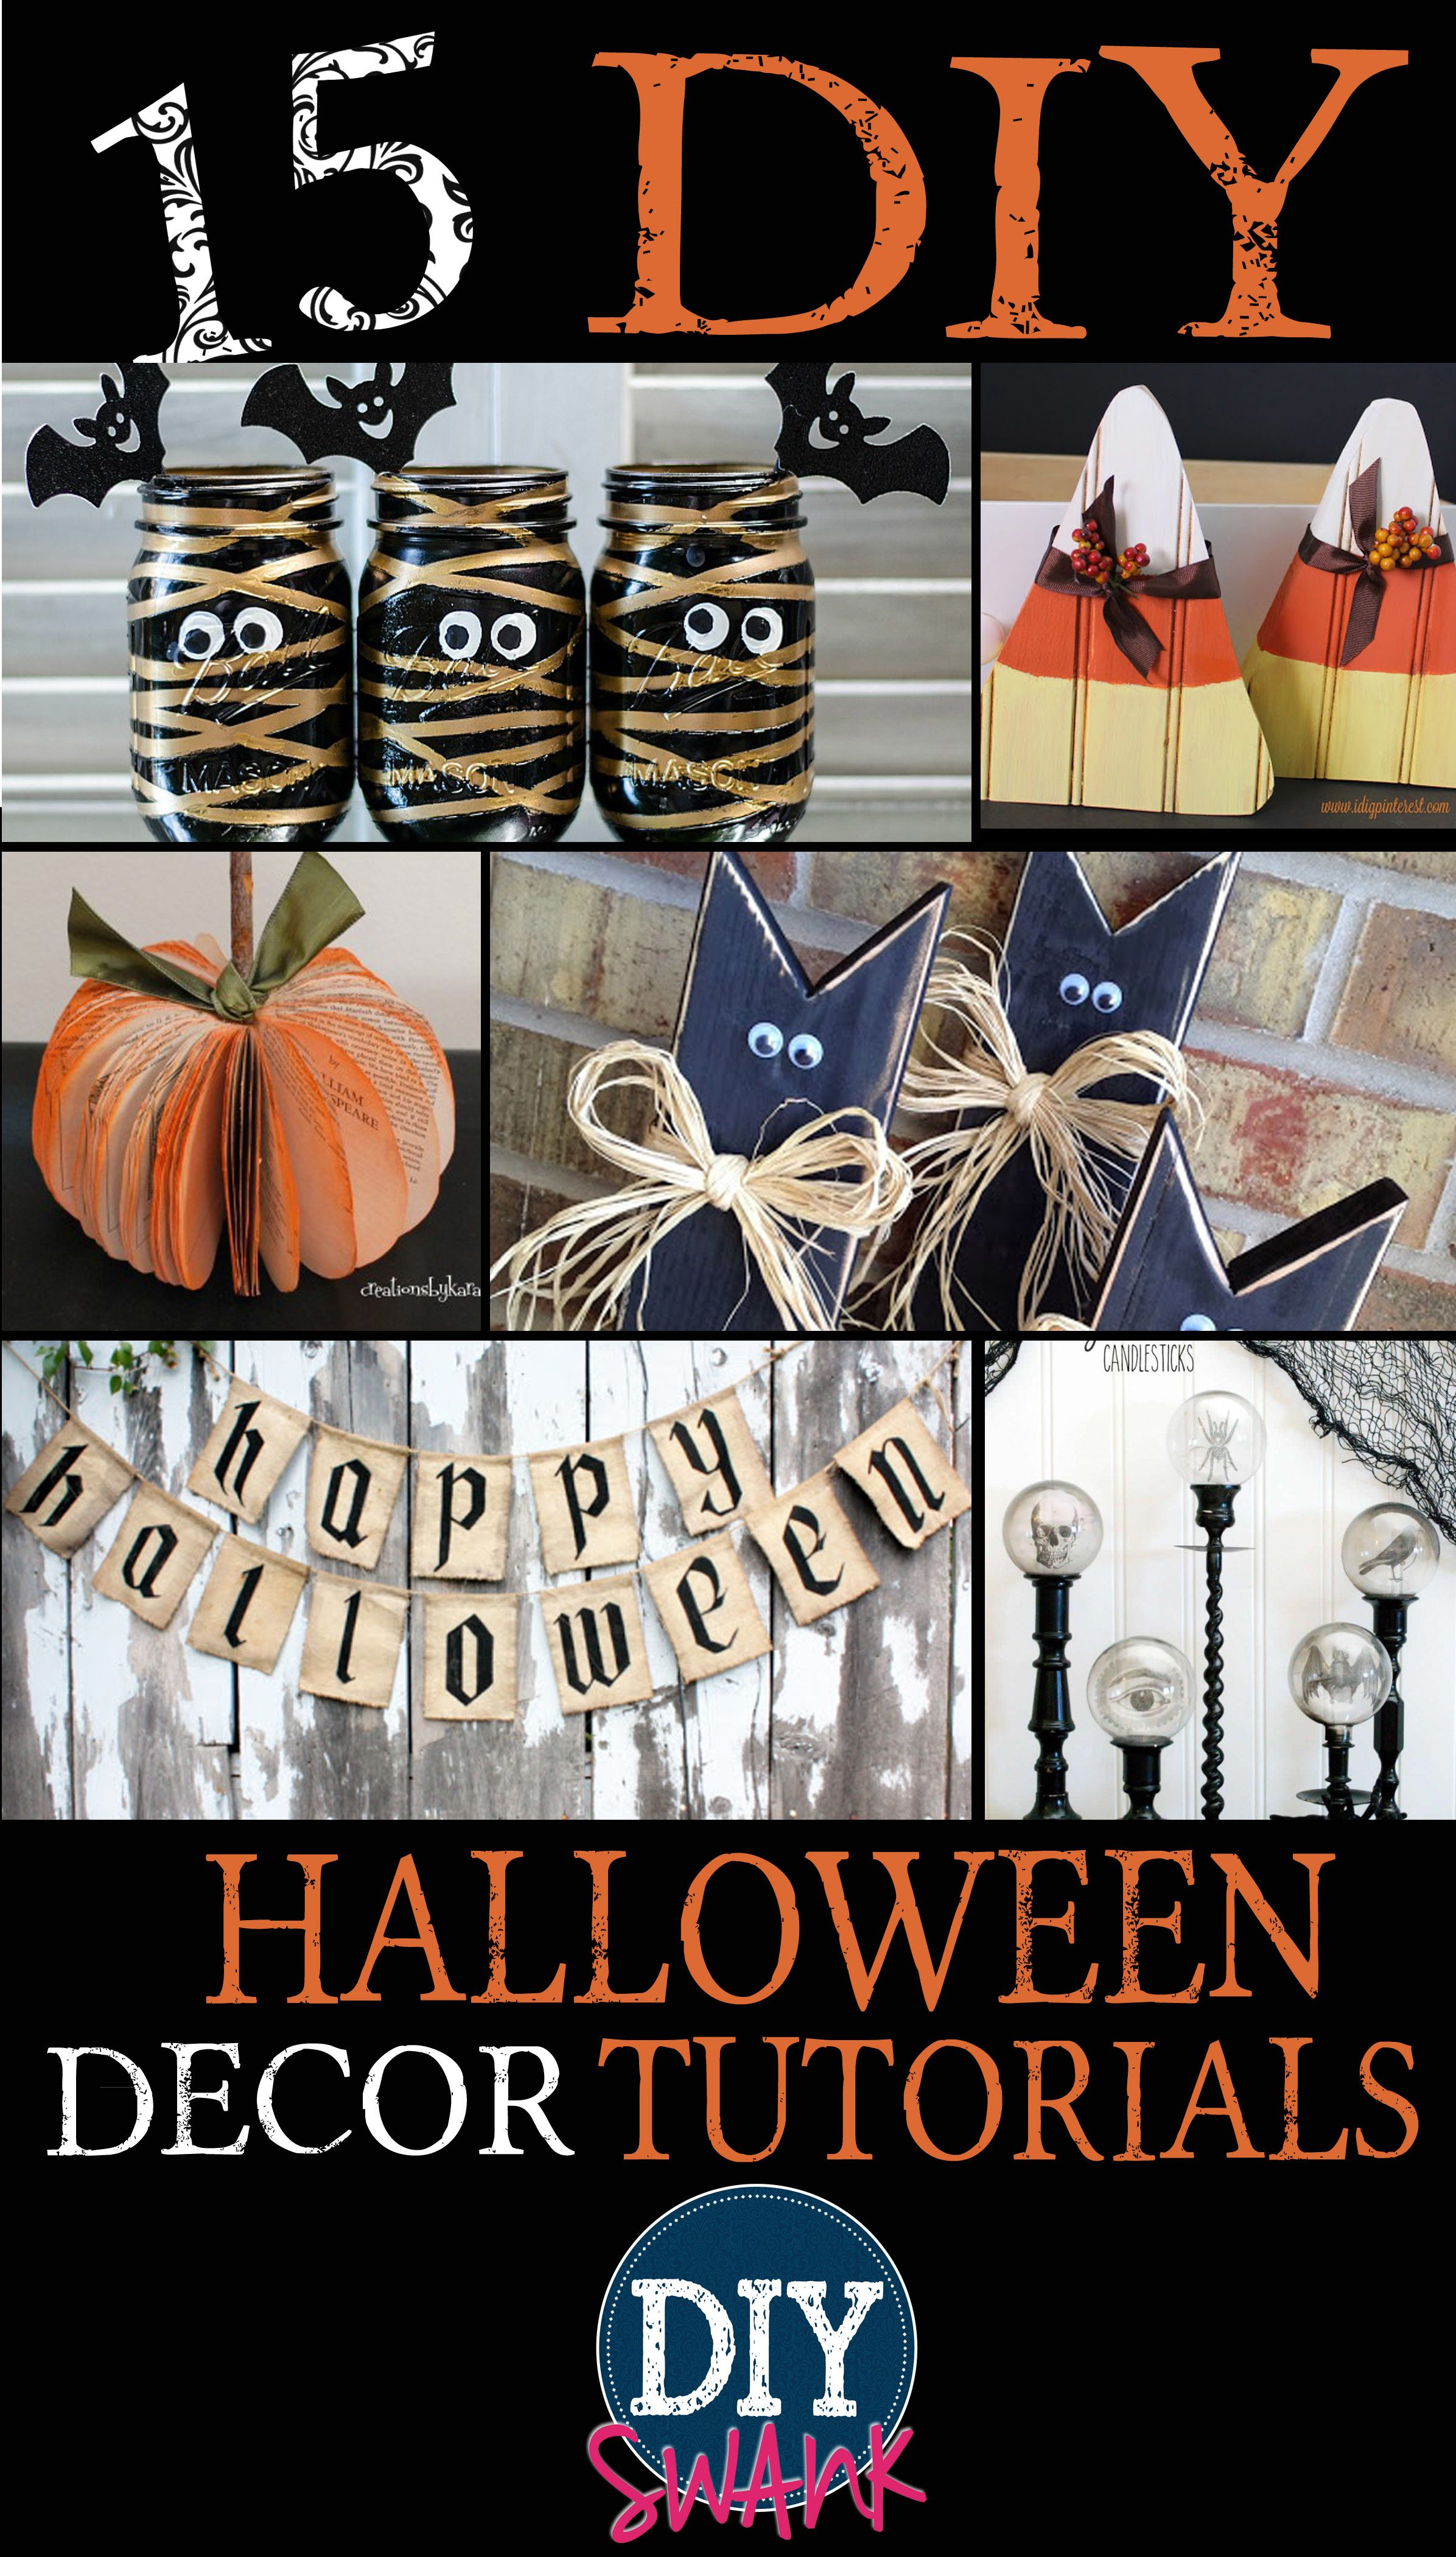 Last minute diy wedding decorations  Find and save diy halloween decorations picture Resolution